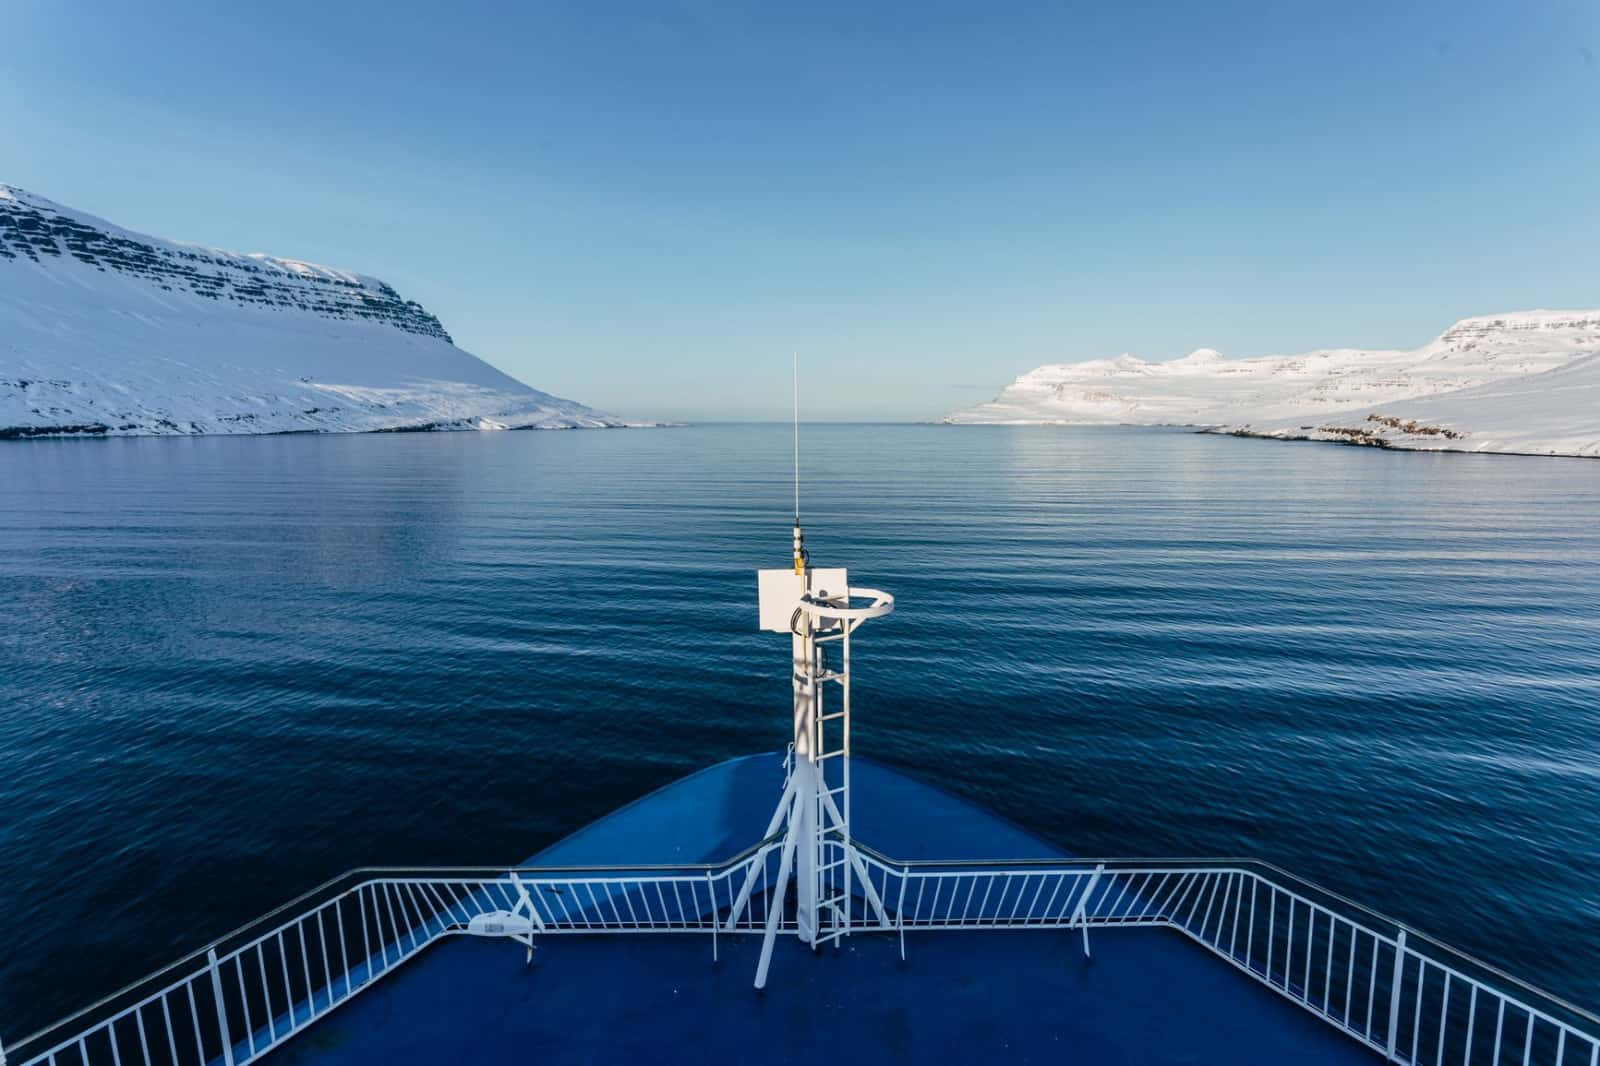 Research ROV vessel sailing through arctic fjord in Iceland